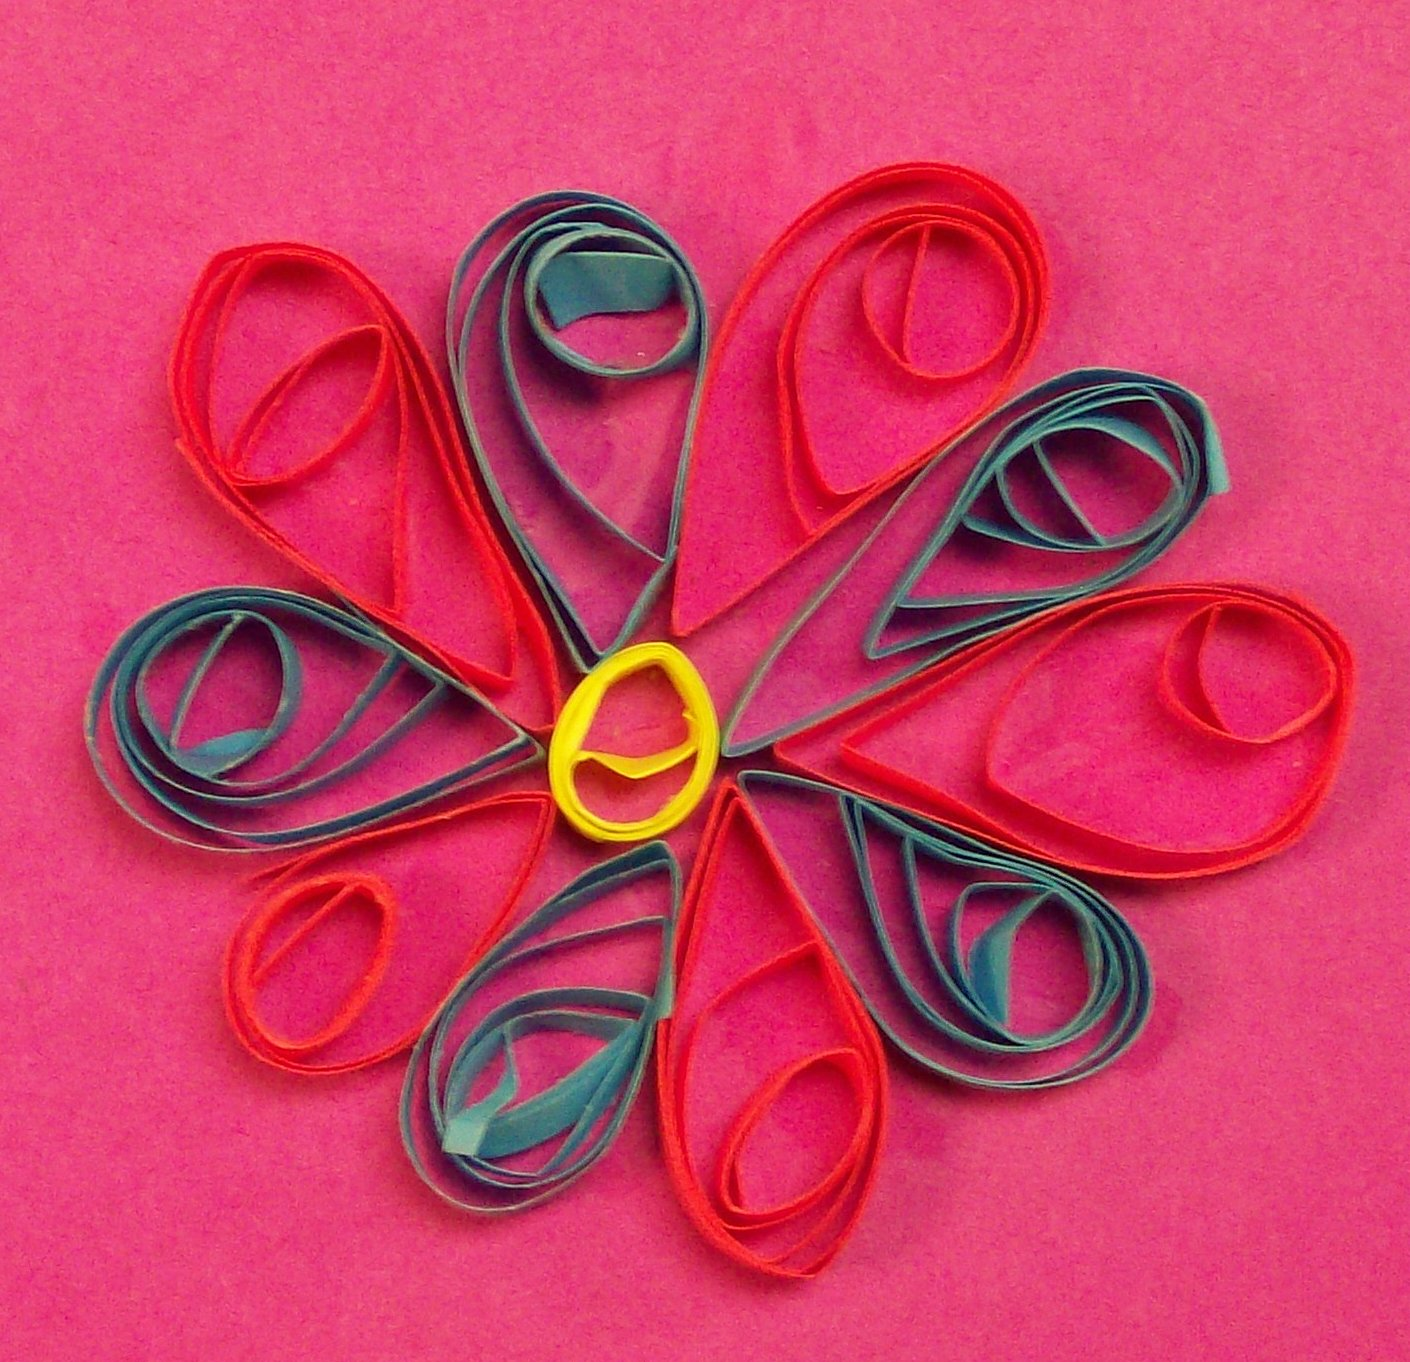 Quilling Paper Filigree Paper Quilling Patterns For